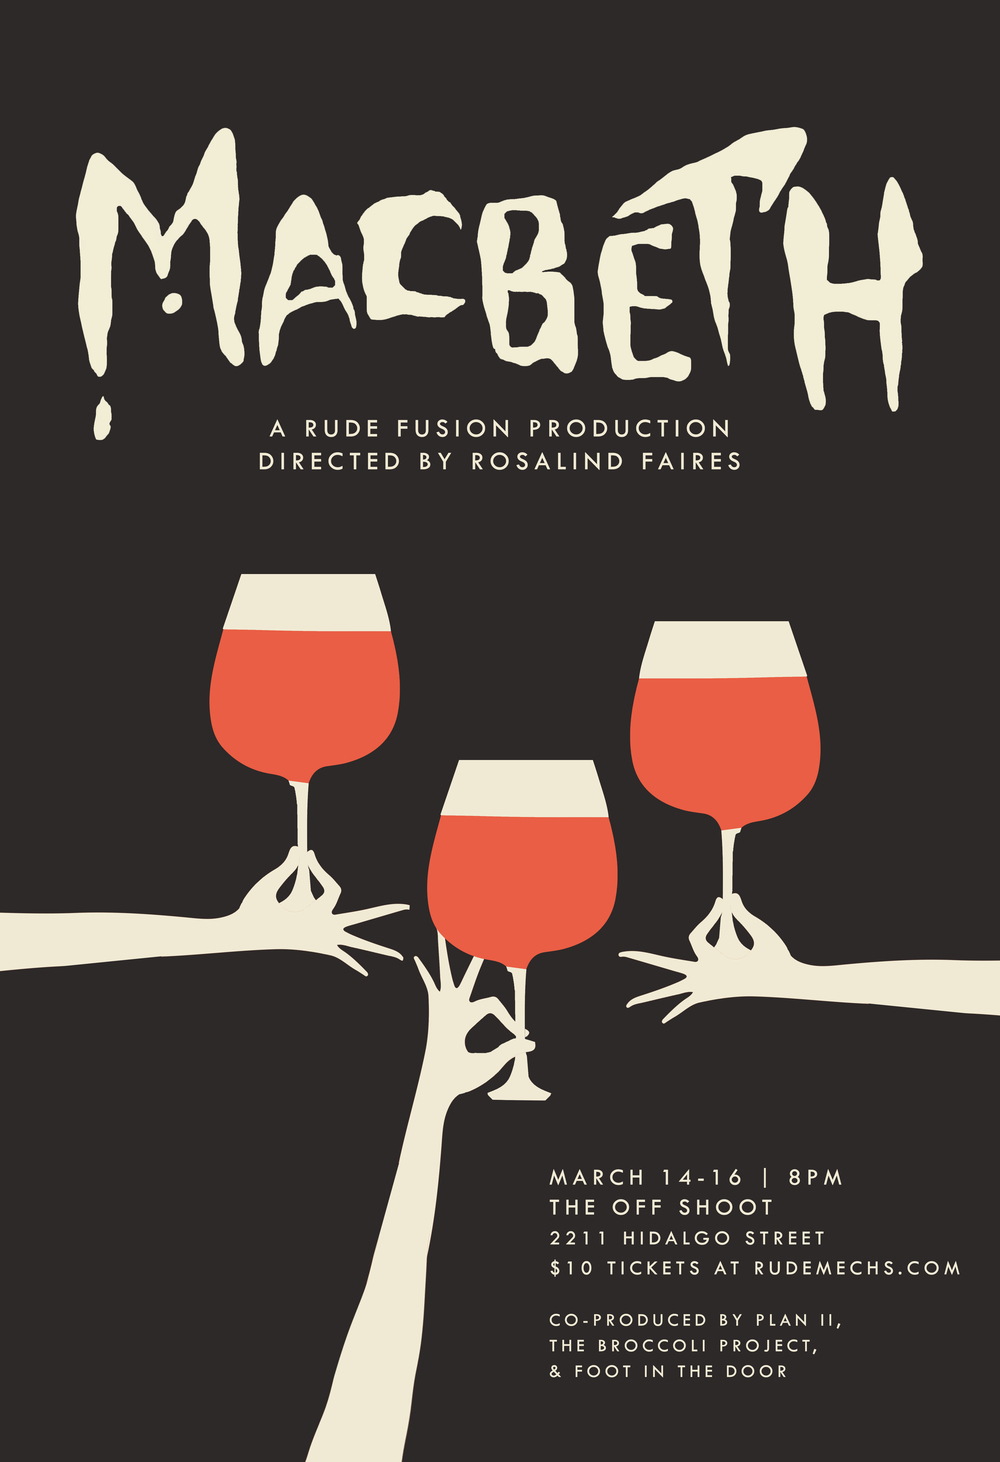 Macbeth_Poster_ToPrint.jpg